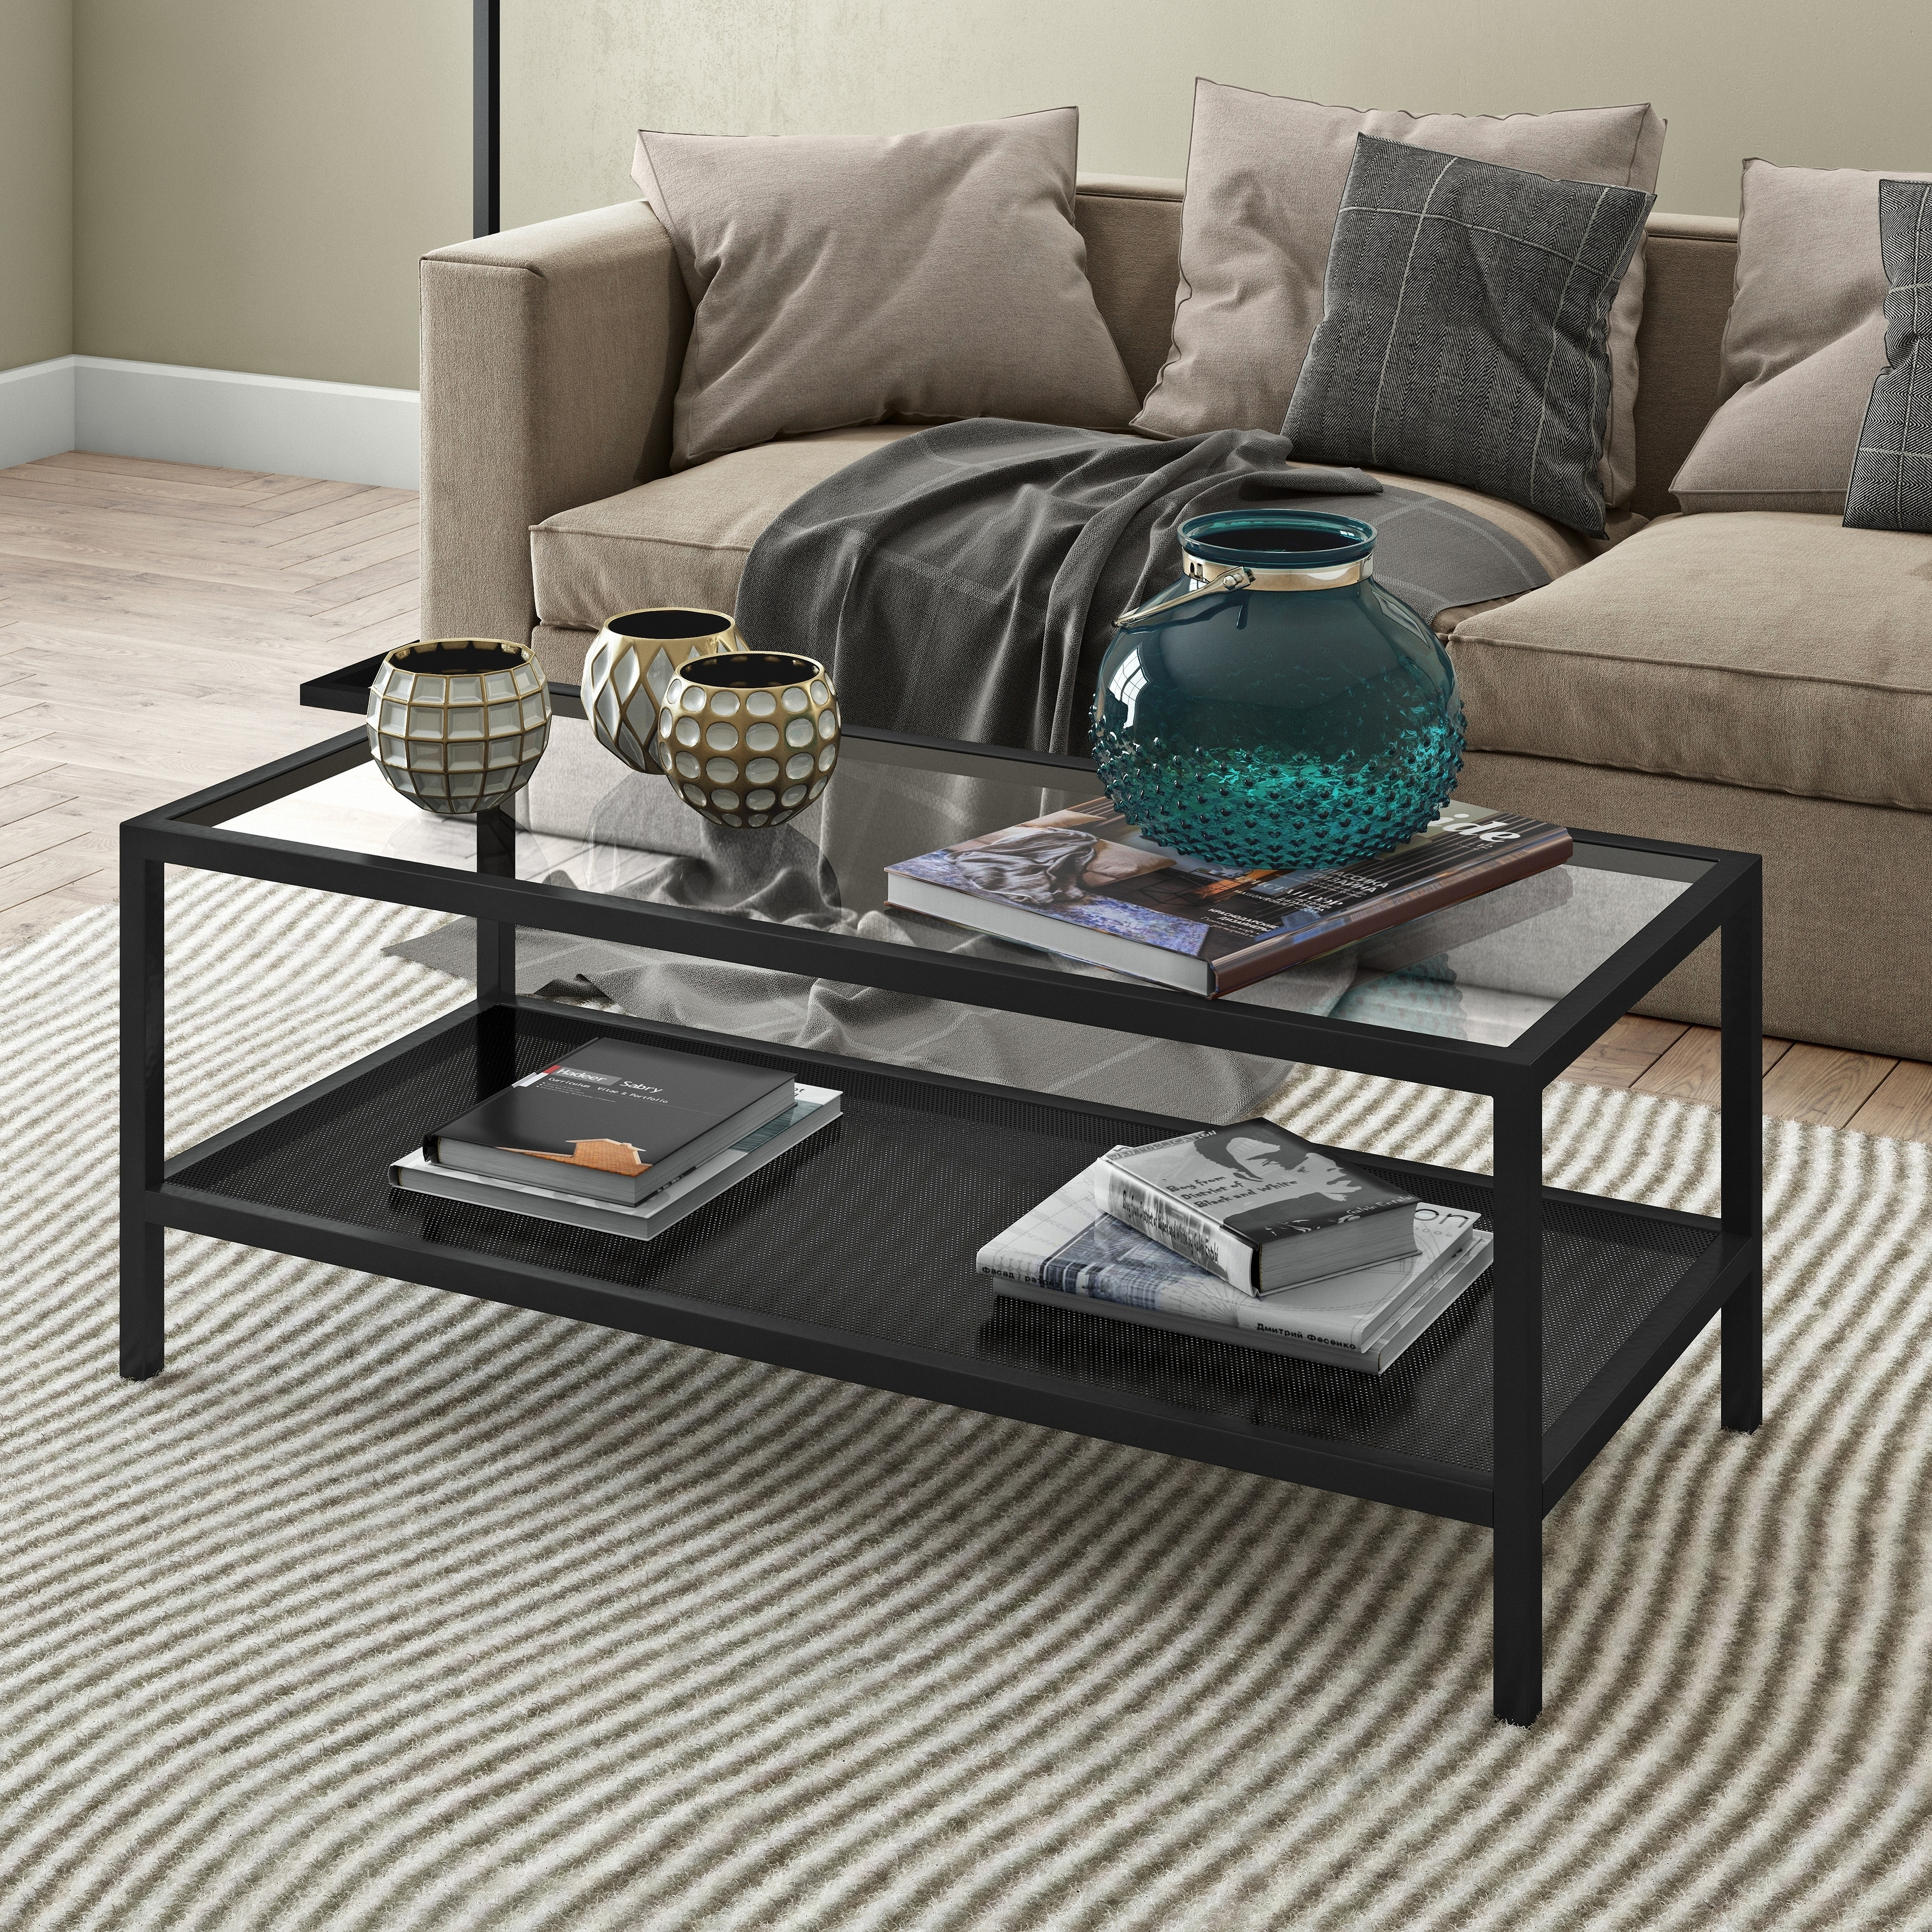 Details About Rigan Metal/Glass Rectangular Coffee Table In Blackened Bronze